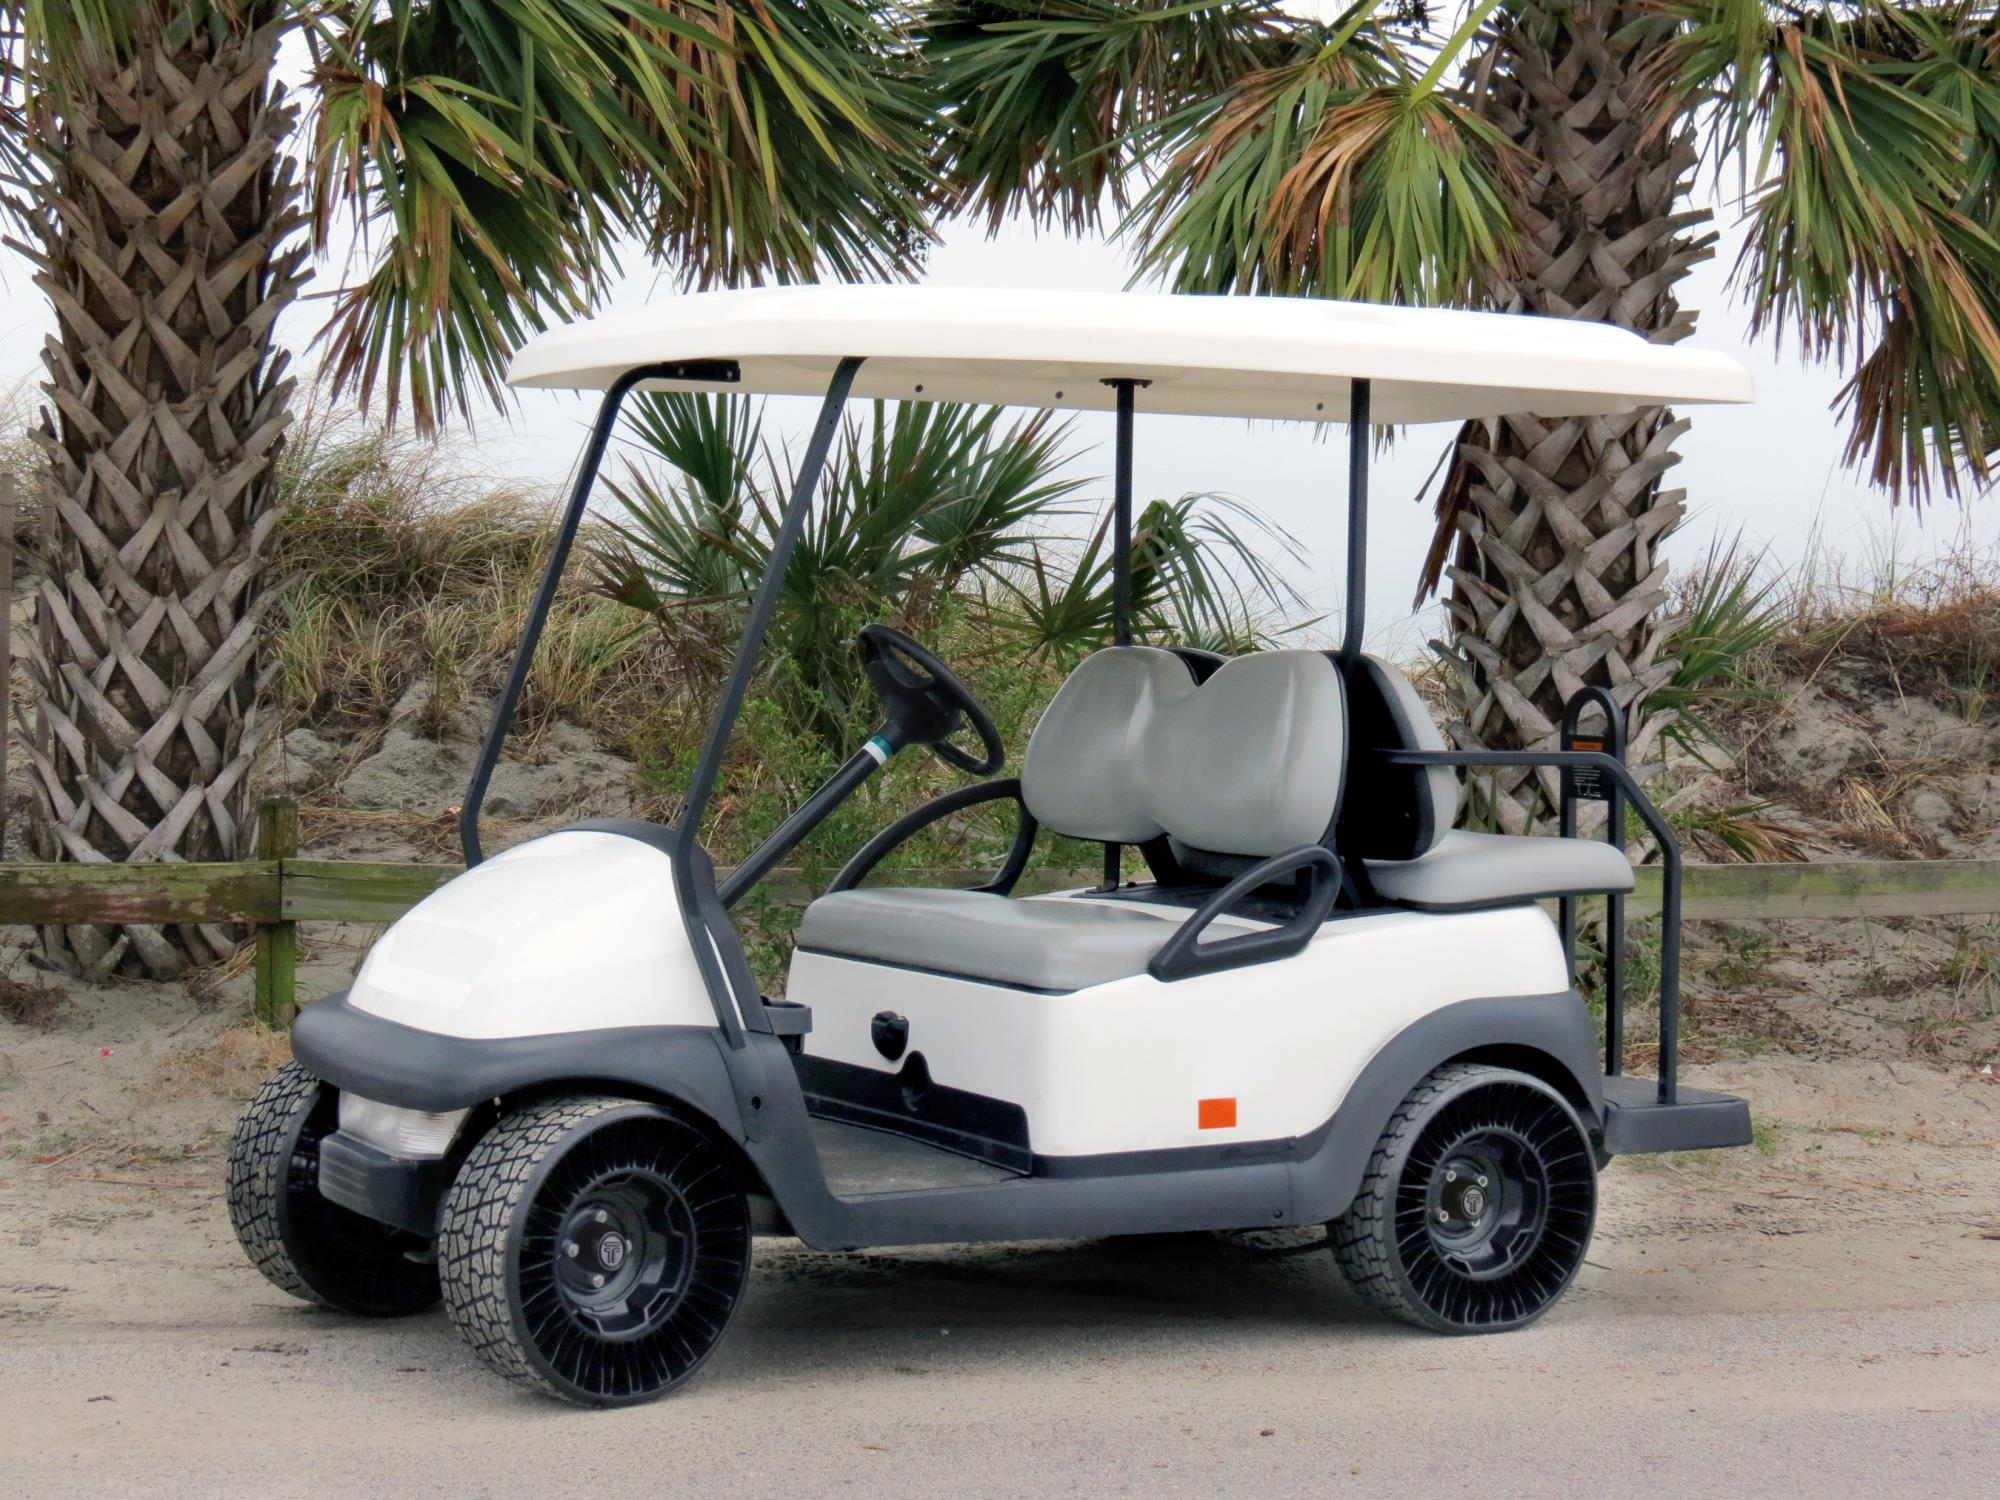 Golf Cart with the Michelin X-tweel